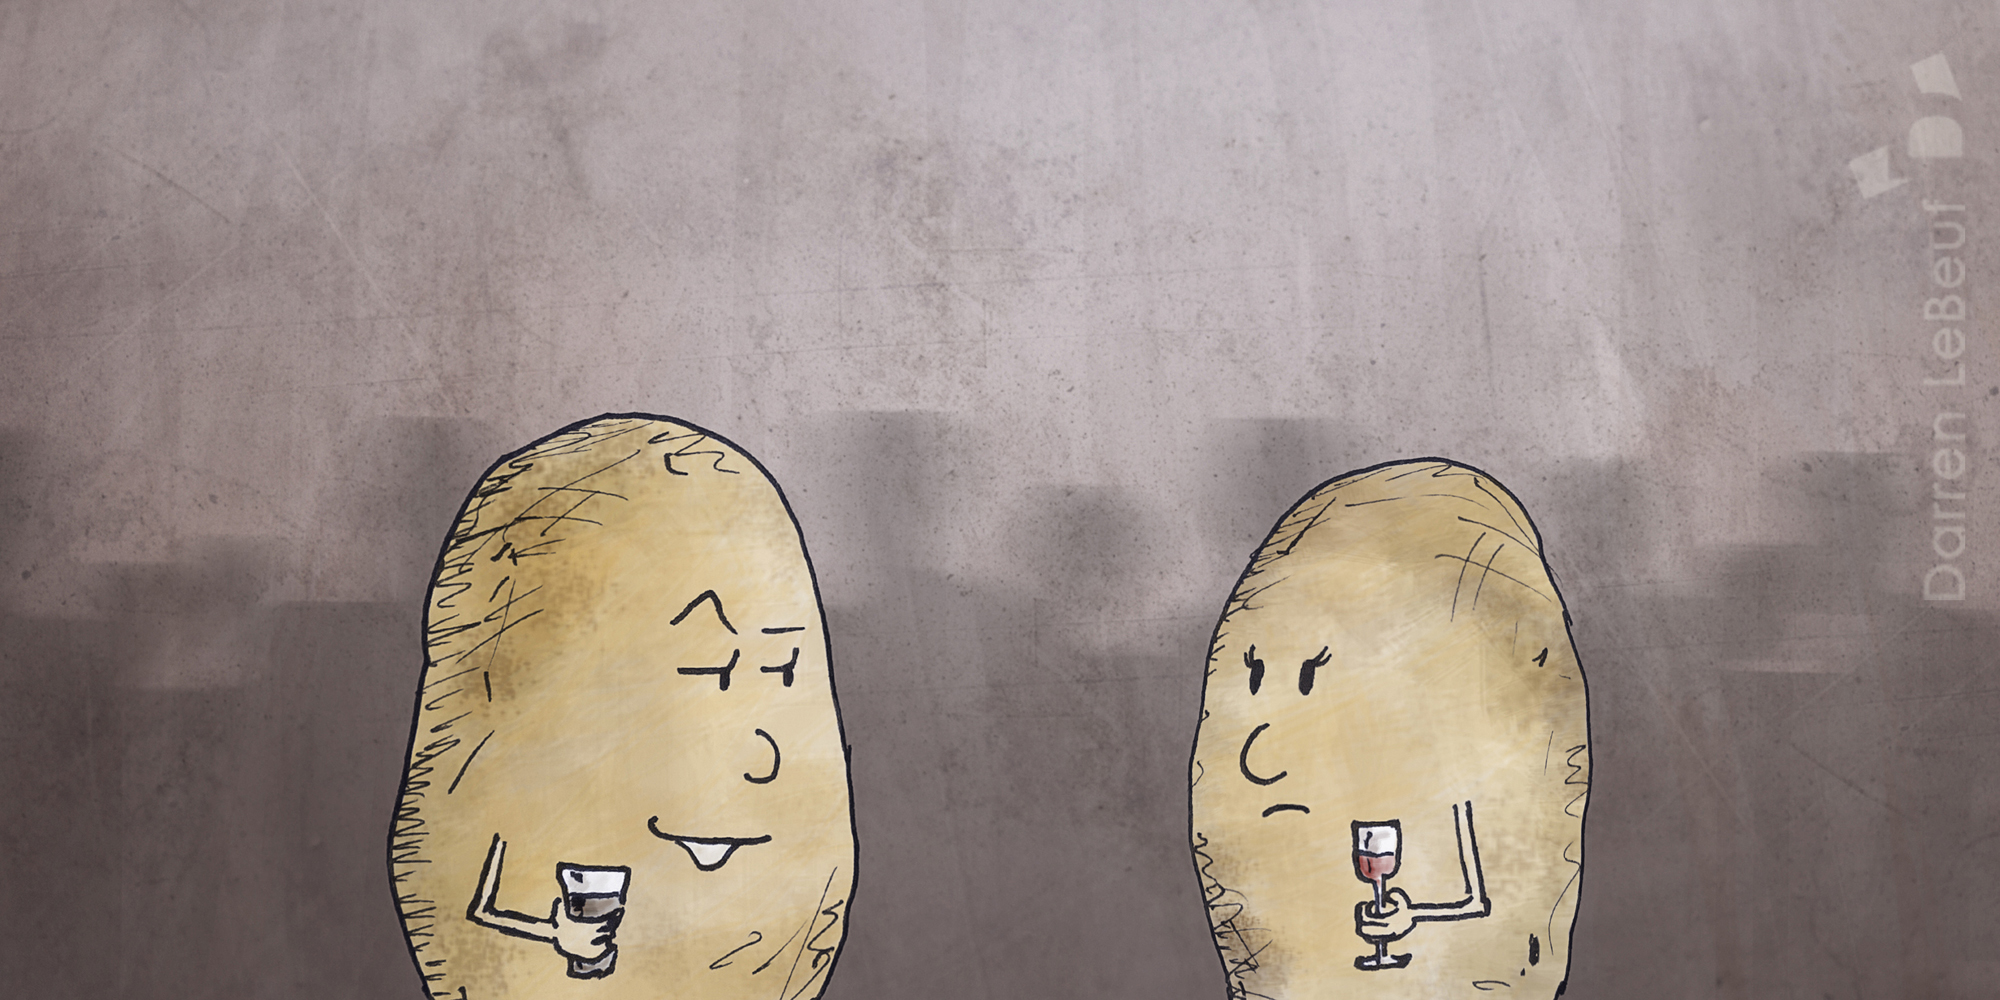 potato pick-up lines, from the Land of le Beef, by Darren Lebeuf